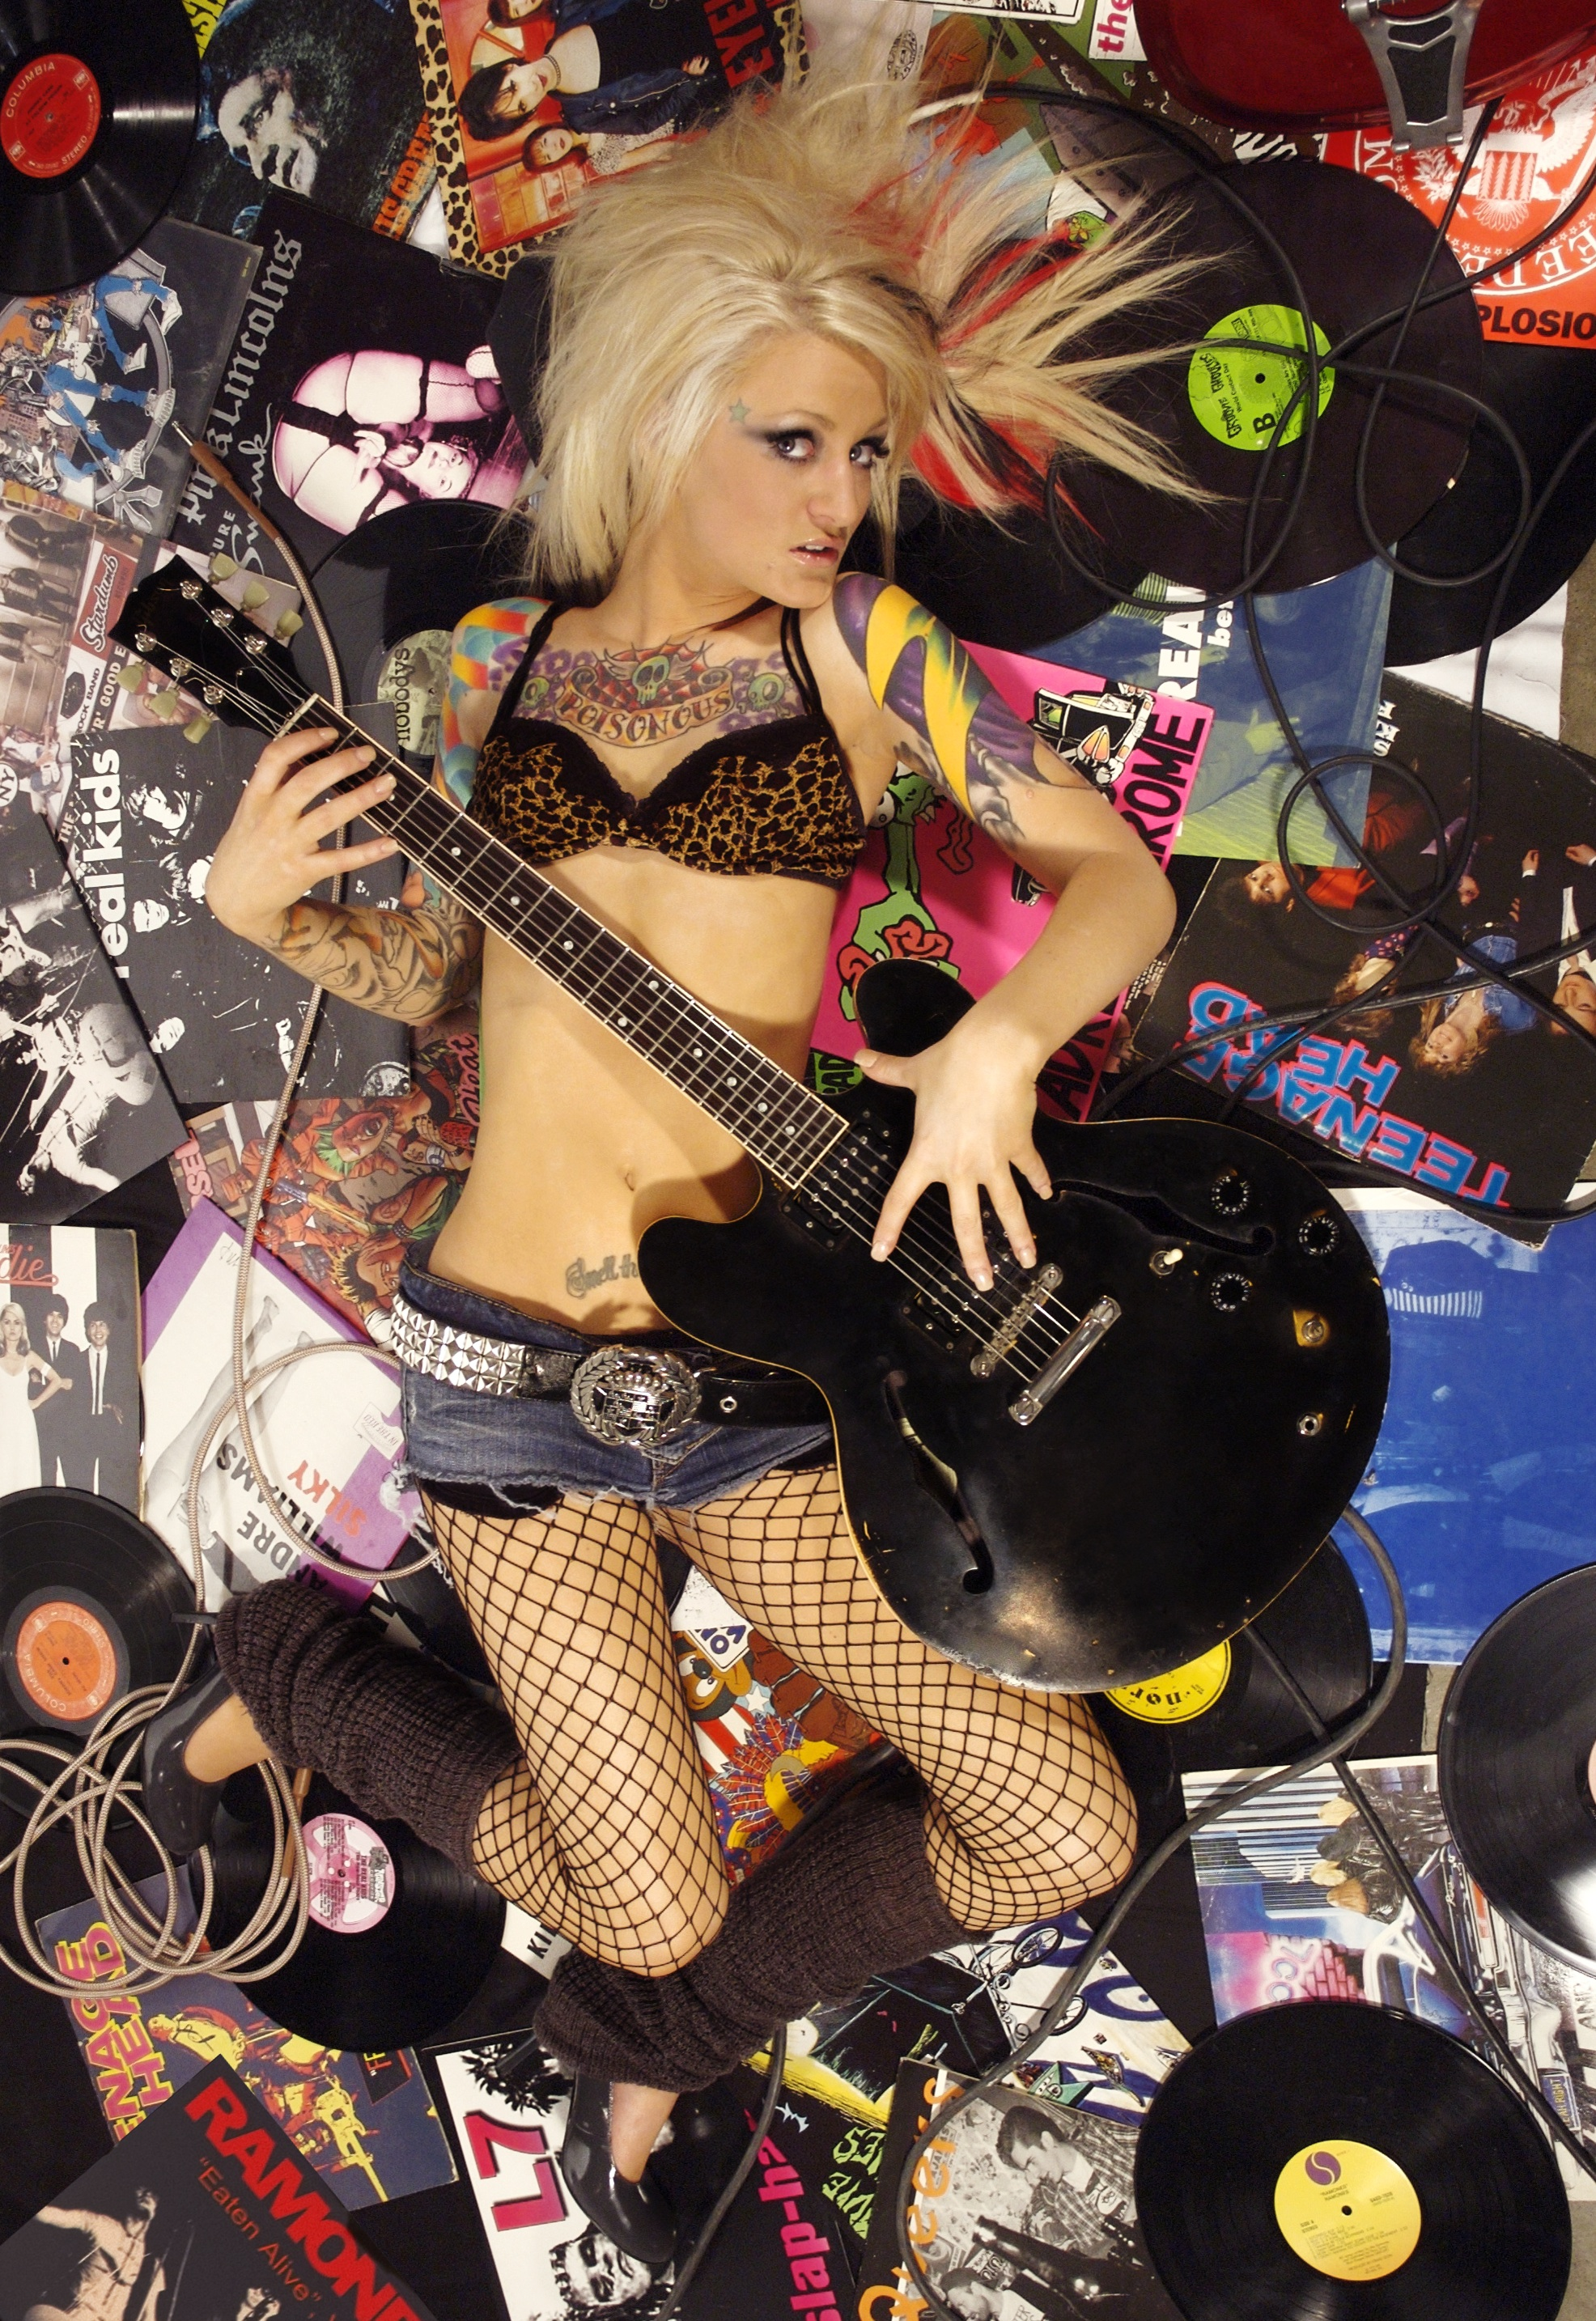 http://fc02.deviantart.net/fs13/f/2007/073/e/e/She__s_a_Punk_Rock_Girl___2_by_J_s_K_Photography.jpg